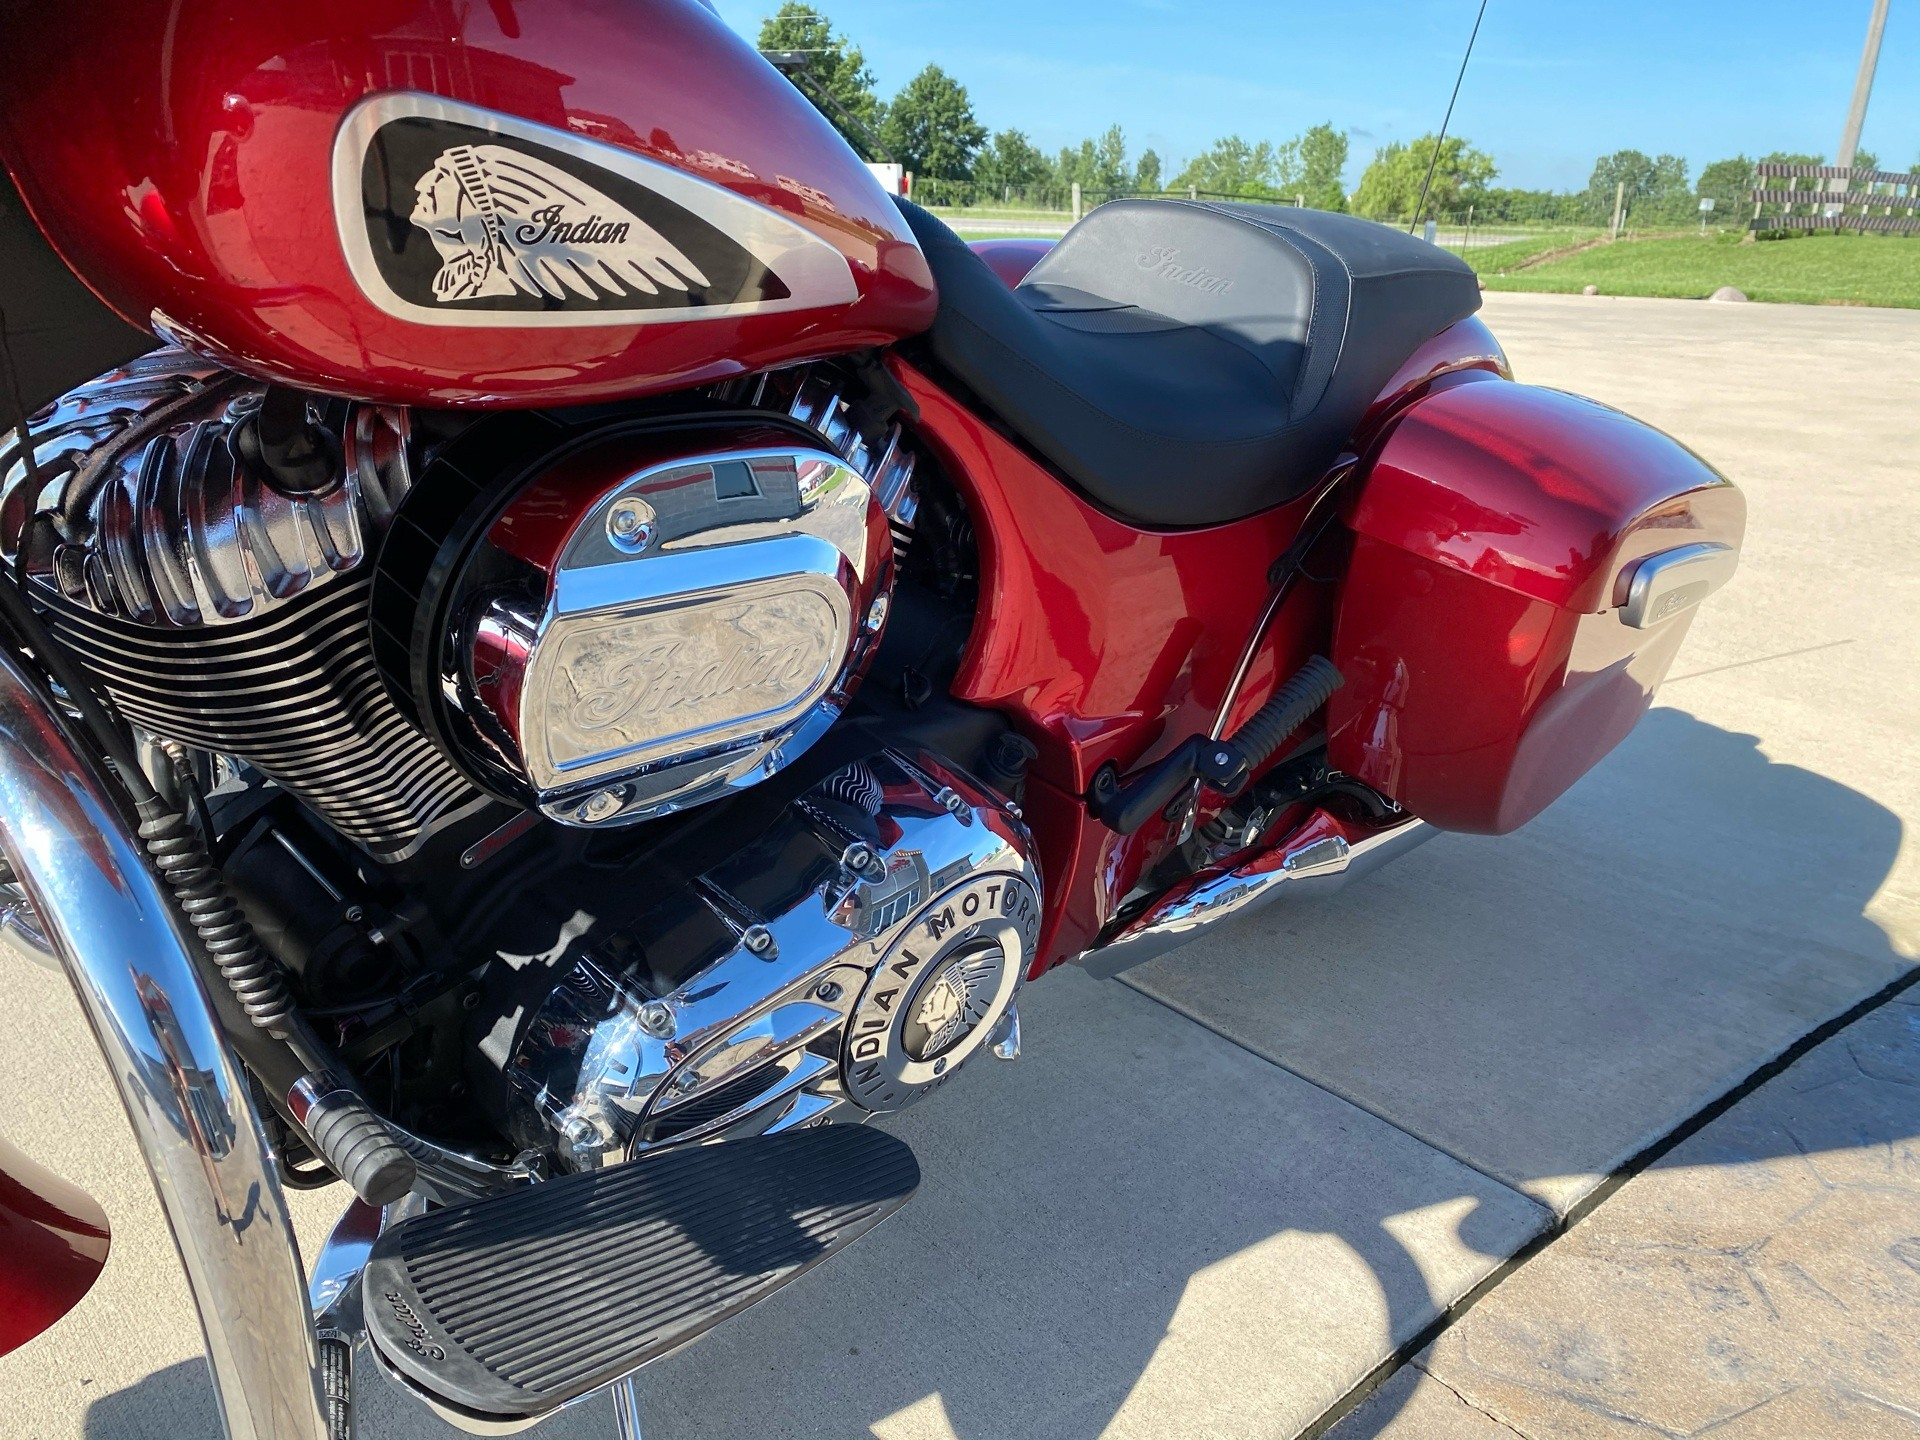 2019 Indian Chieftain® Limited ABS in Ottumwa, Iowa - Photo 16